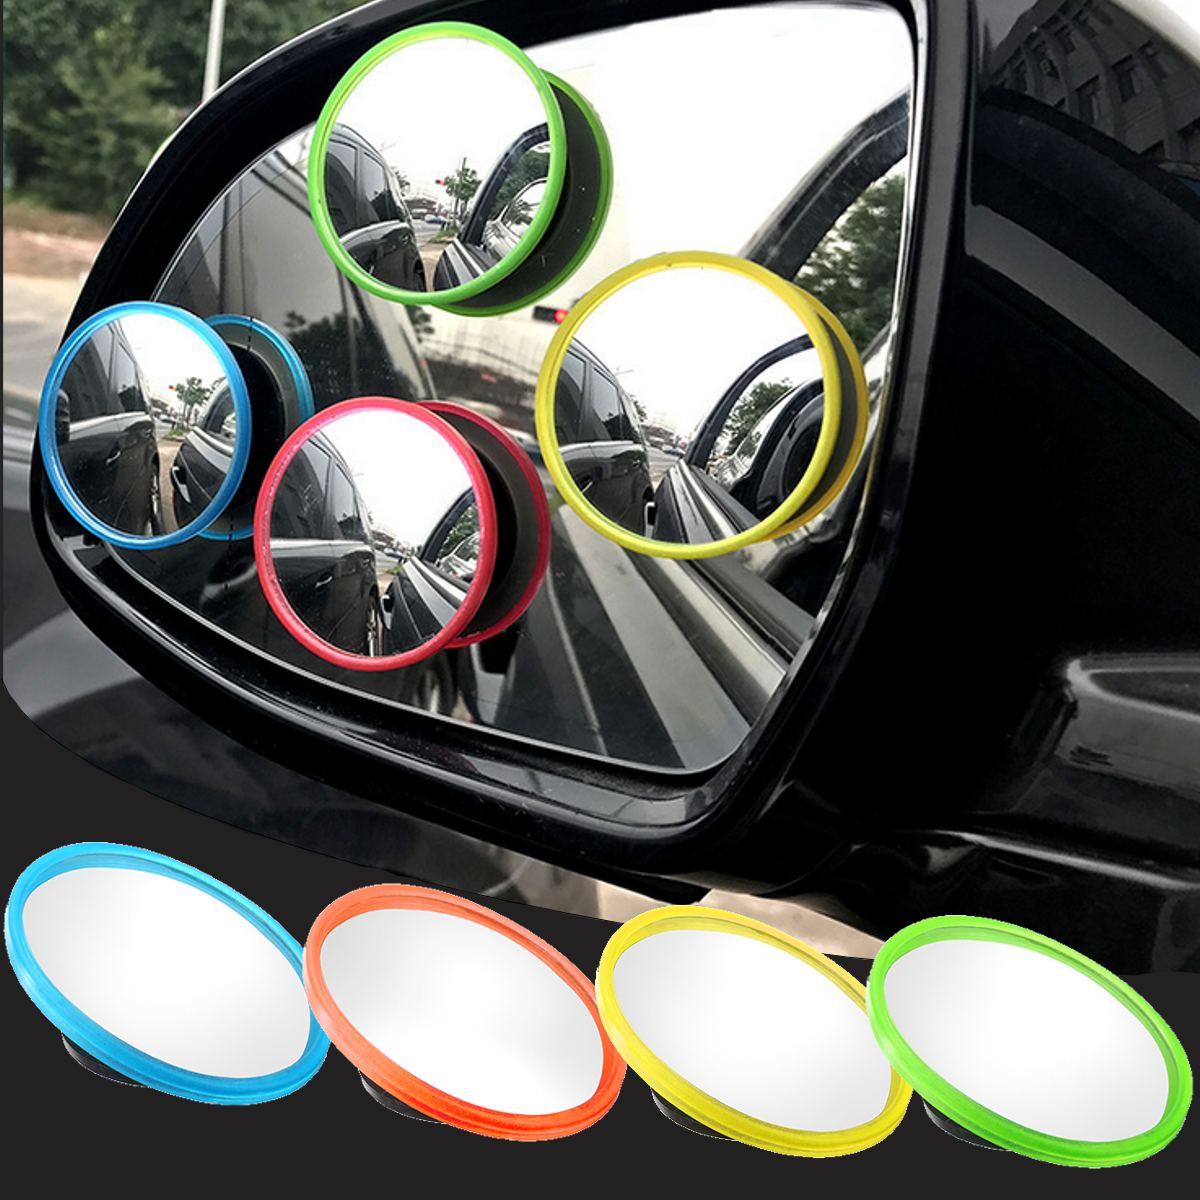 2pcs Car Rearview Blind Spot 360 Degrees Adjustable Rotating Wide Angle Round Convex Mirror